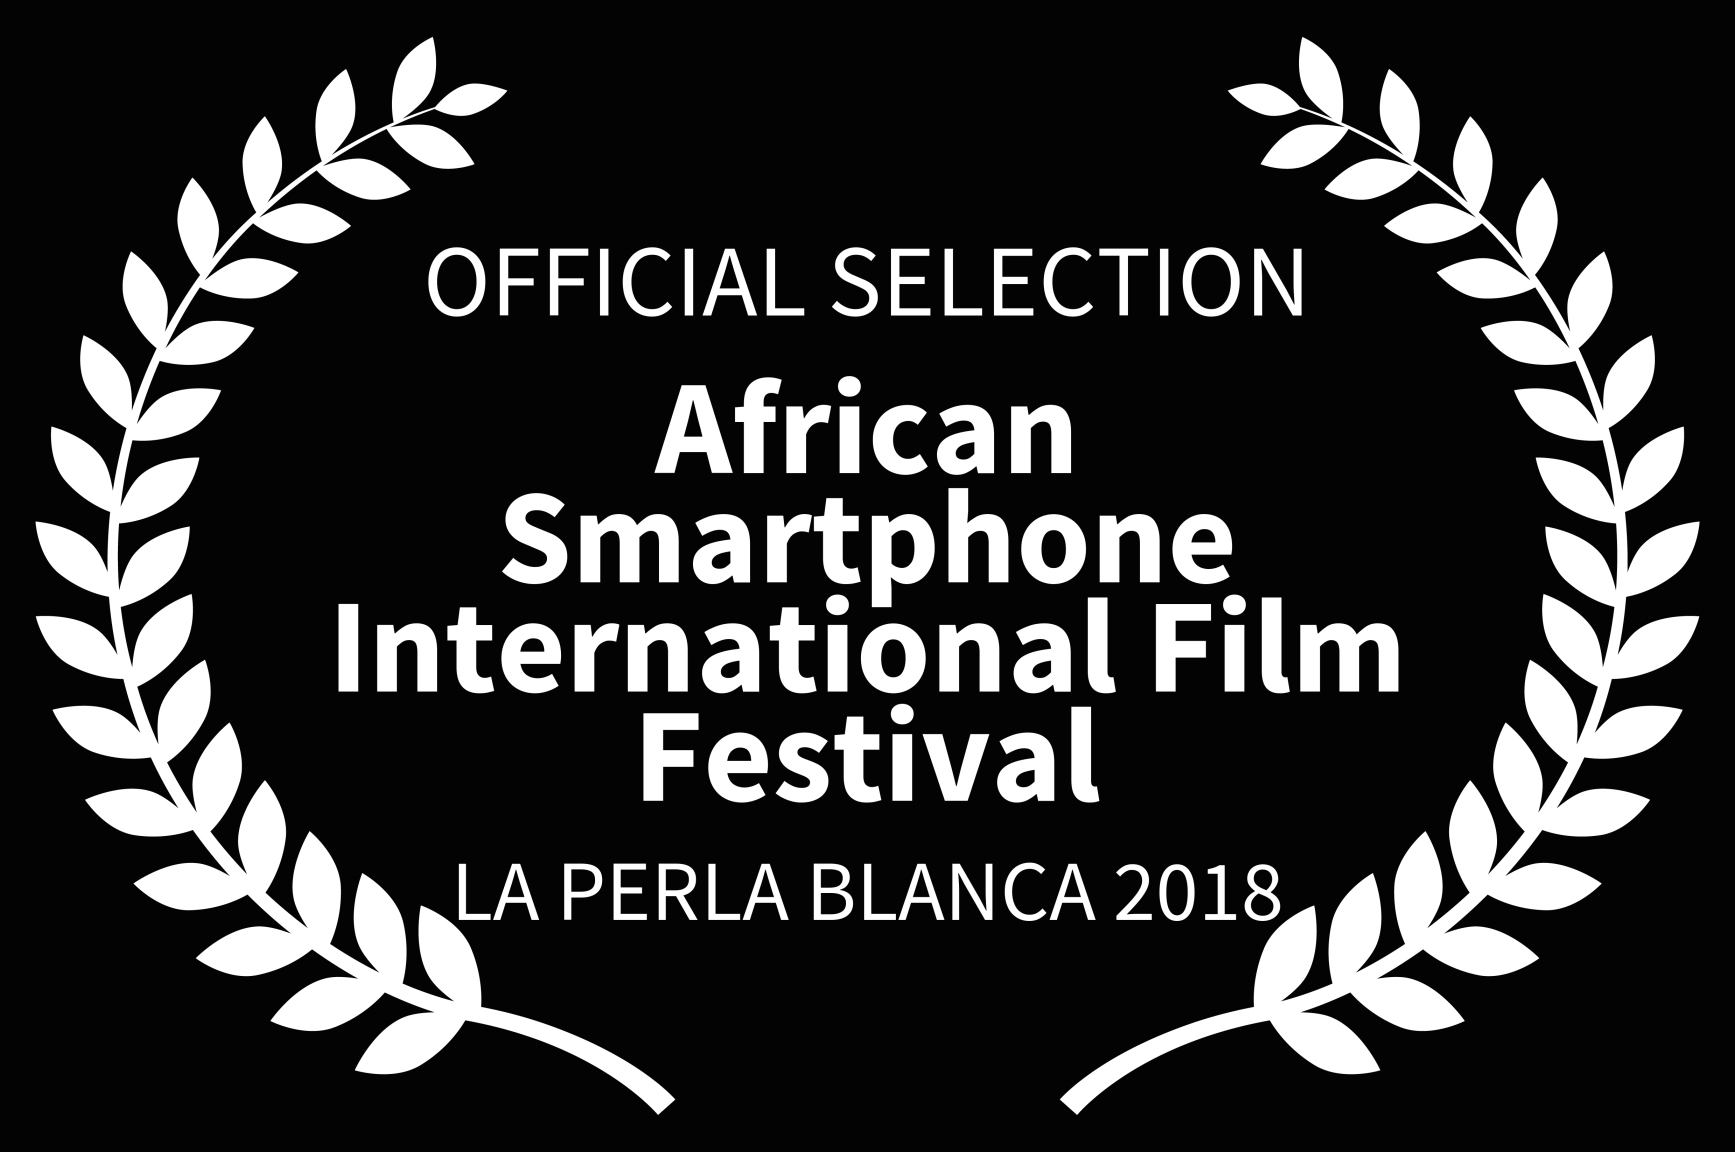 OFFICIAL SELECTION - African Smartphone